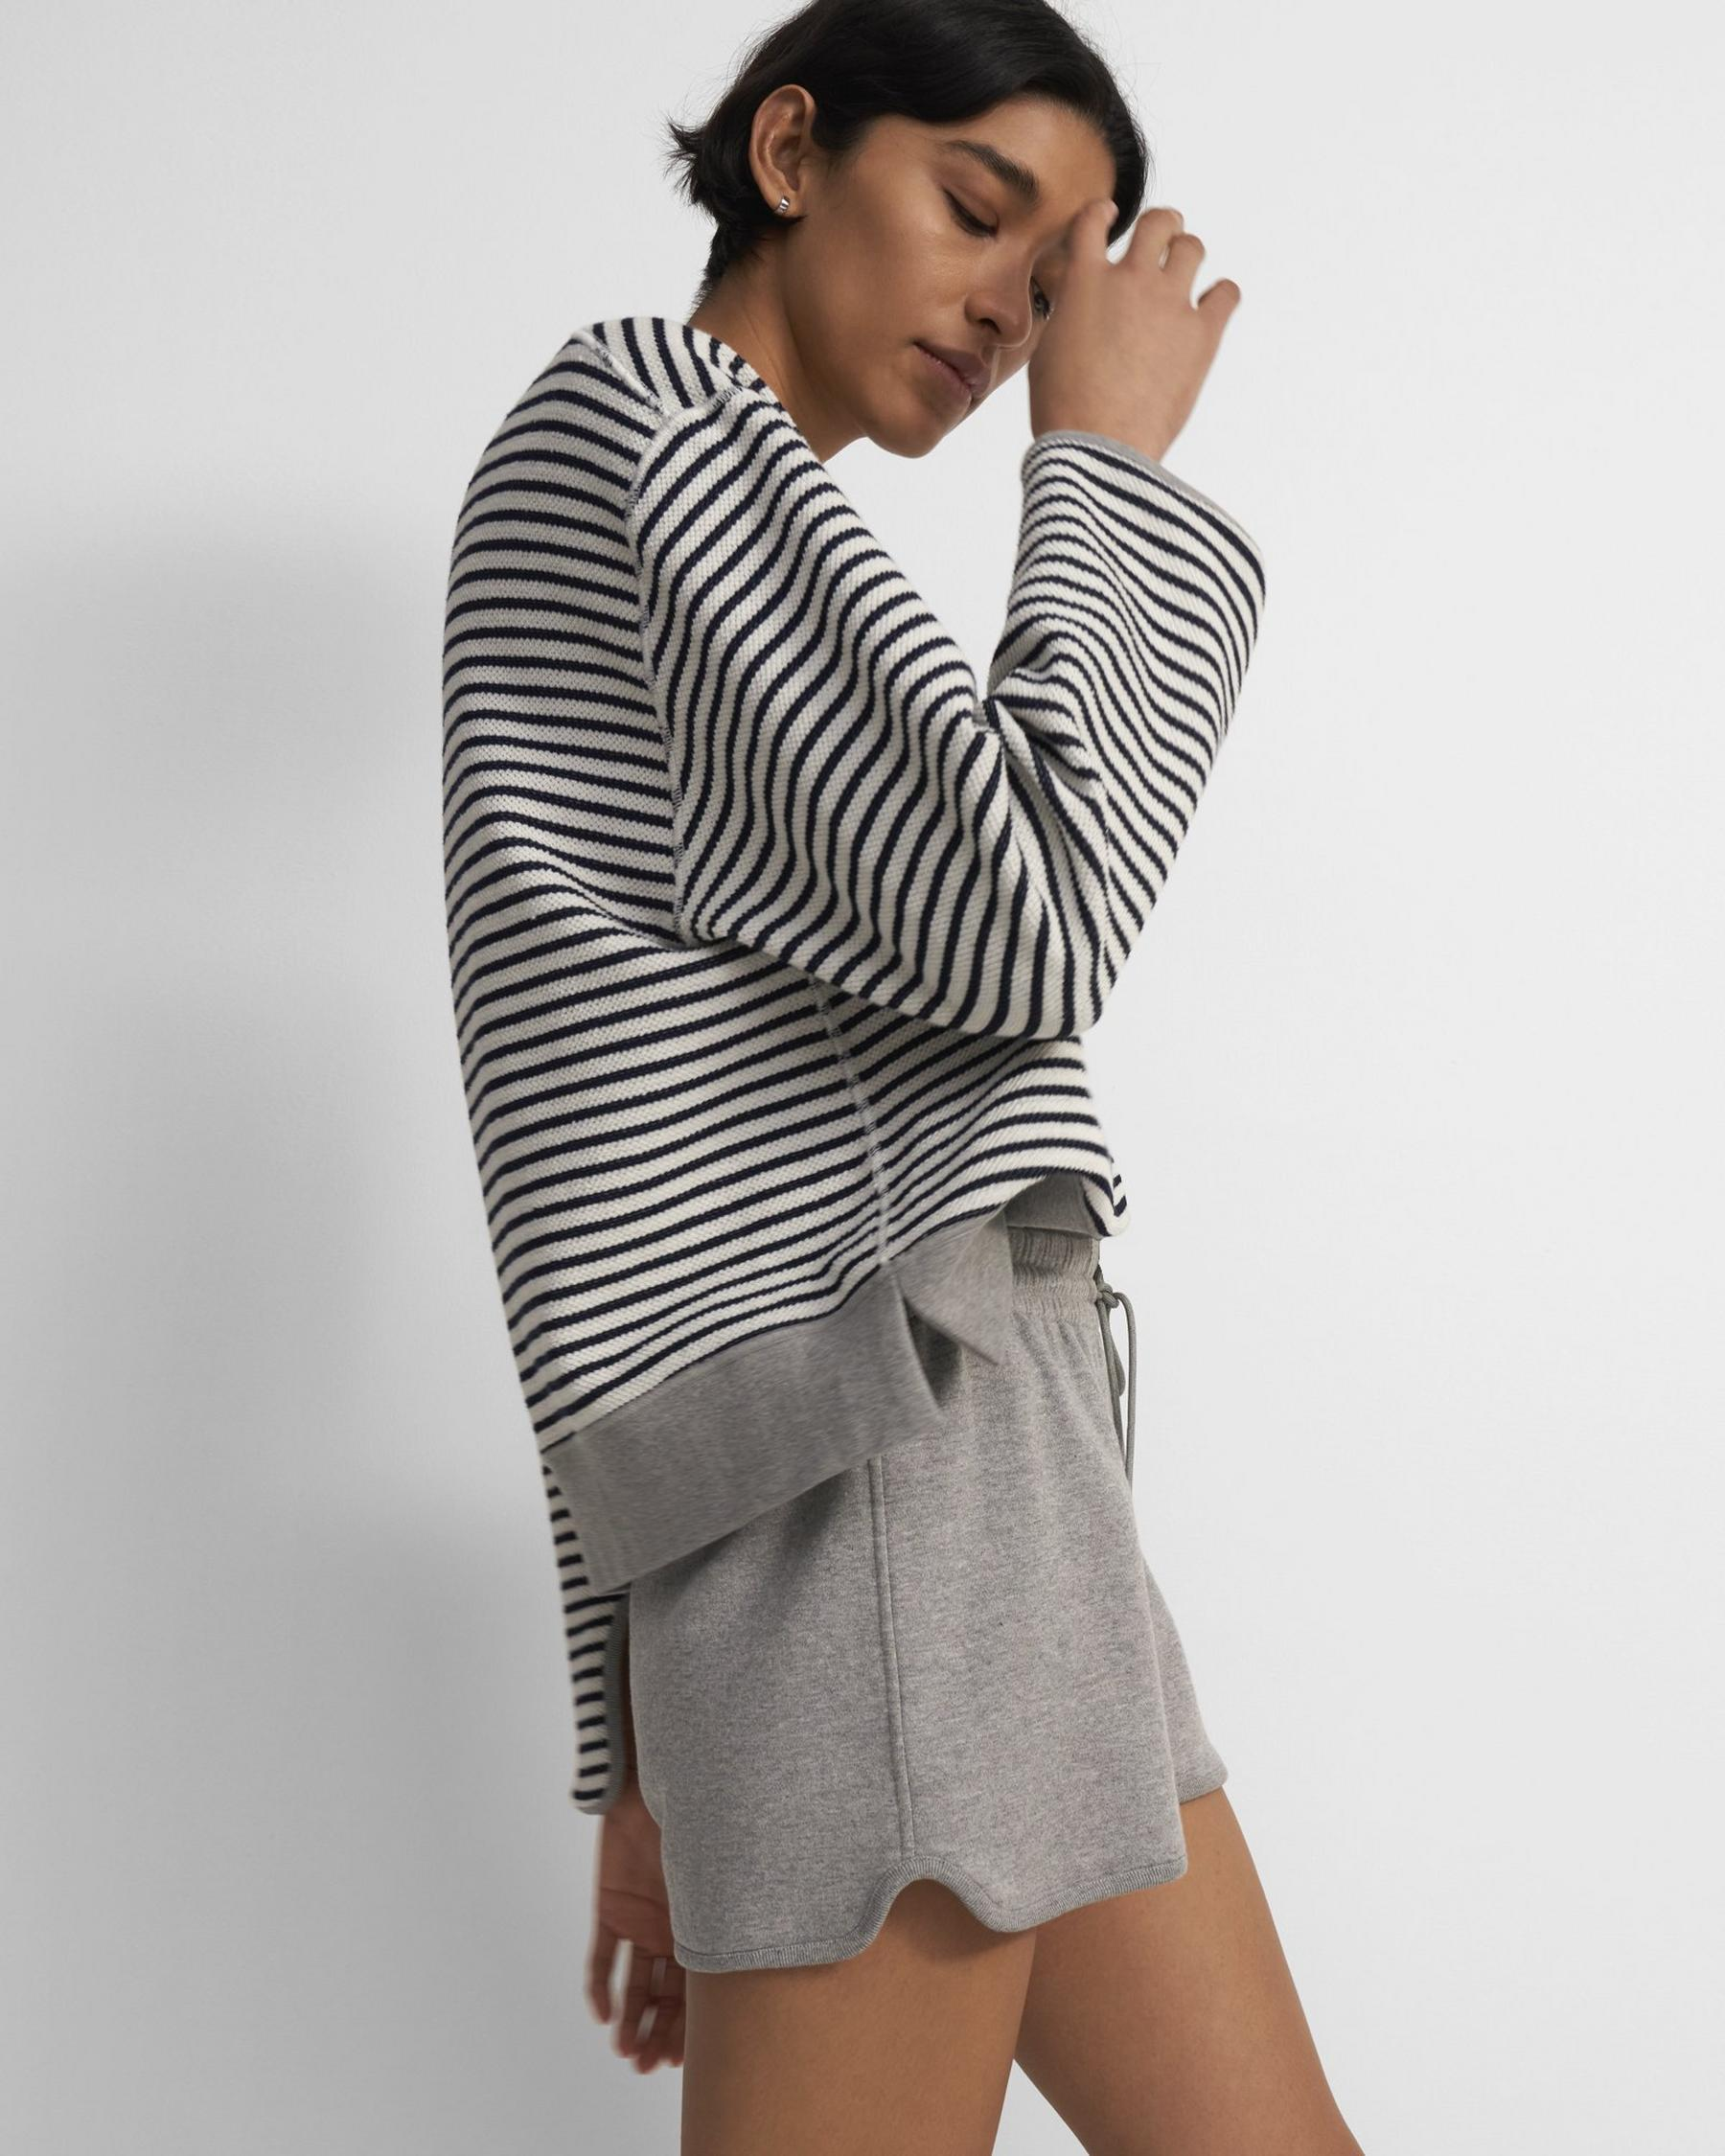 Reversible Pull-On Short in Cotton Terry